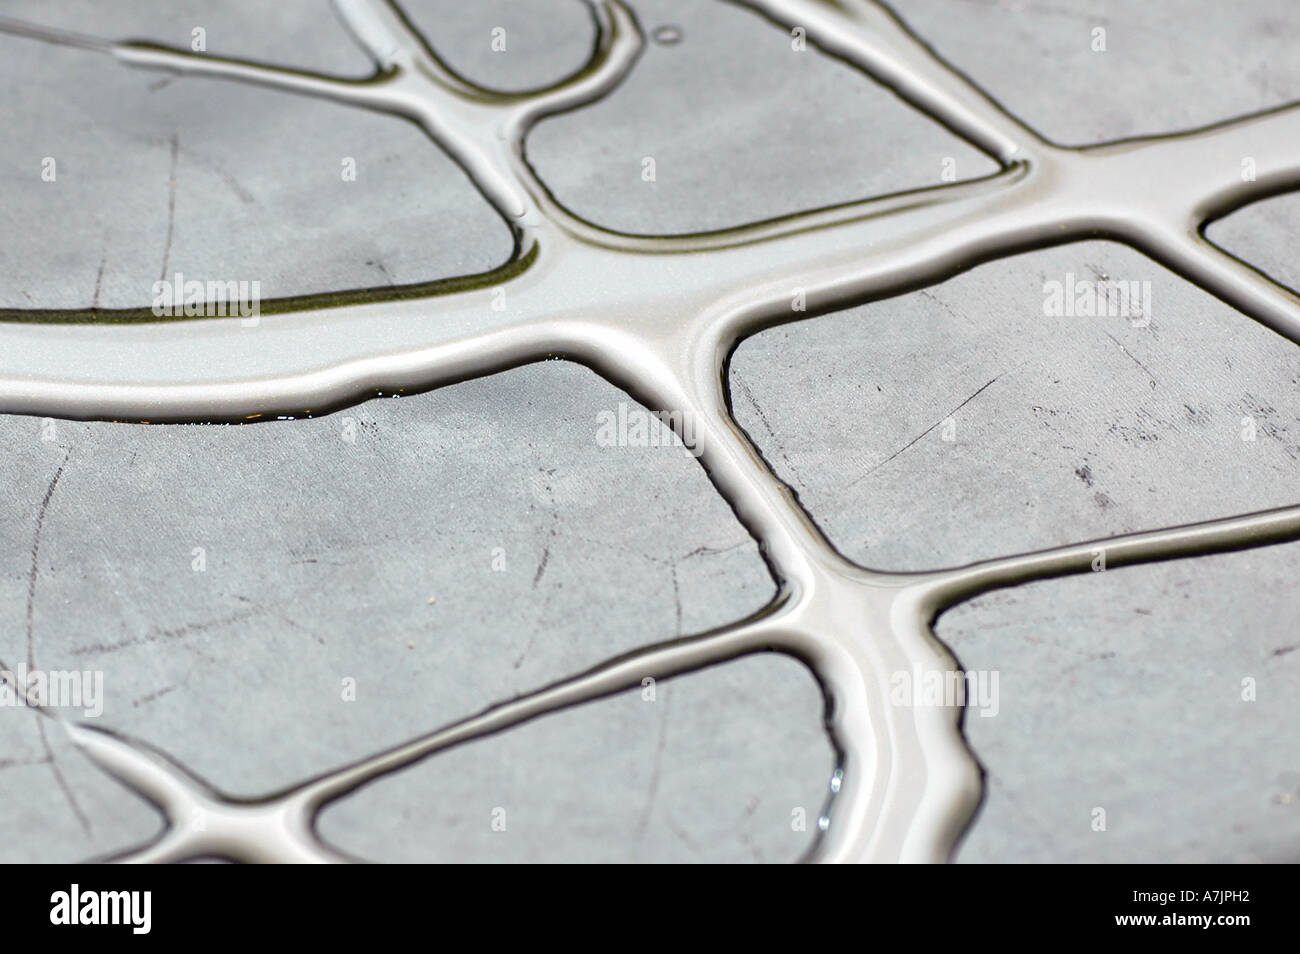 Oil on pan - Stock Image